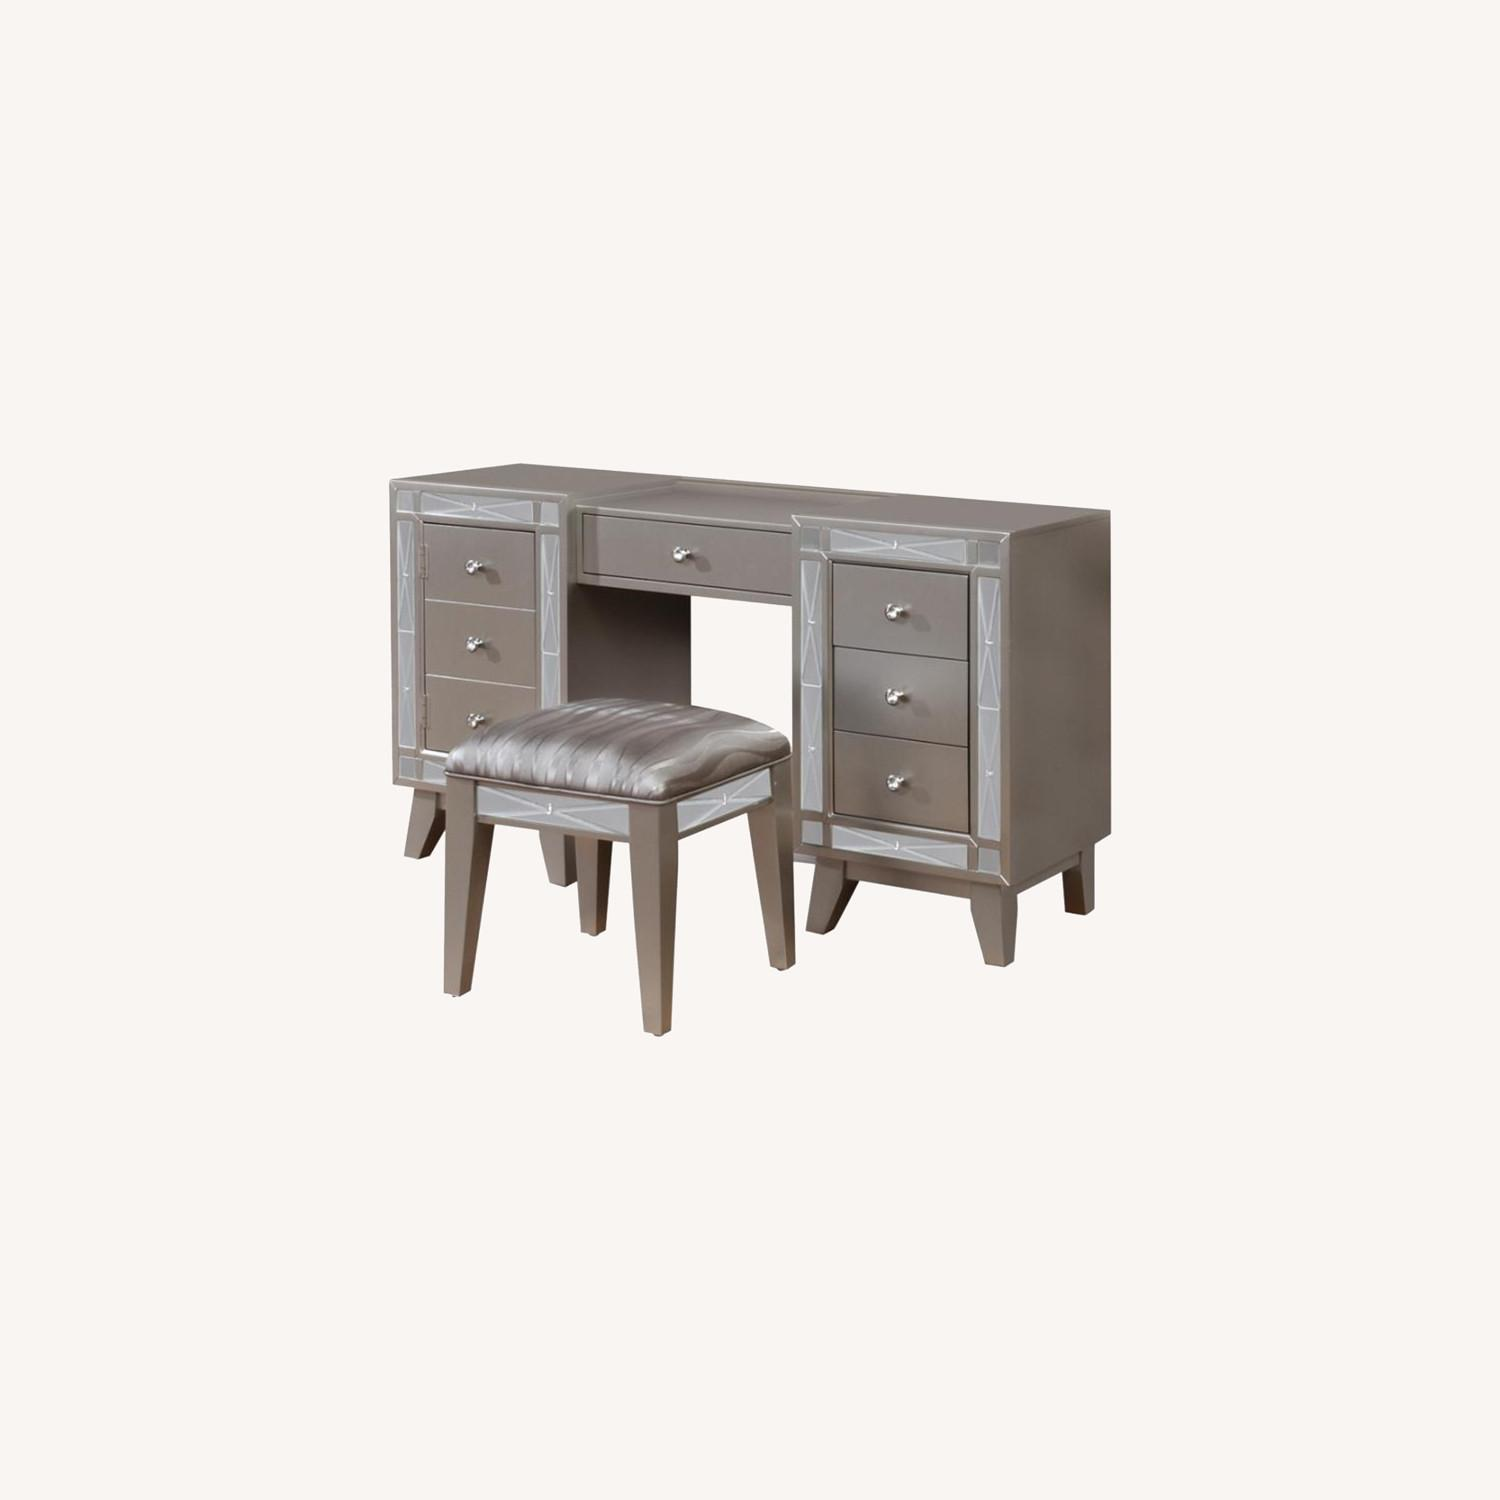 Vanity Desk & Stool In Metallic Mercury Finish - image-5